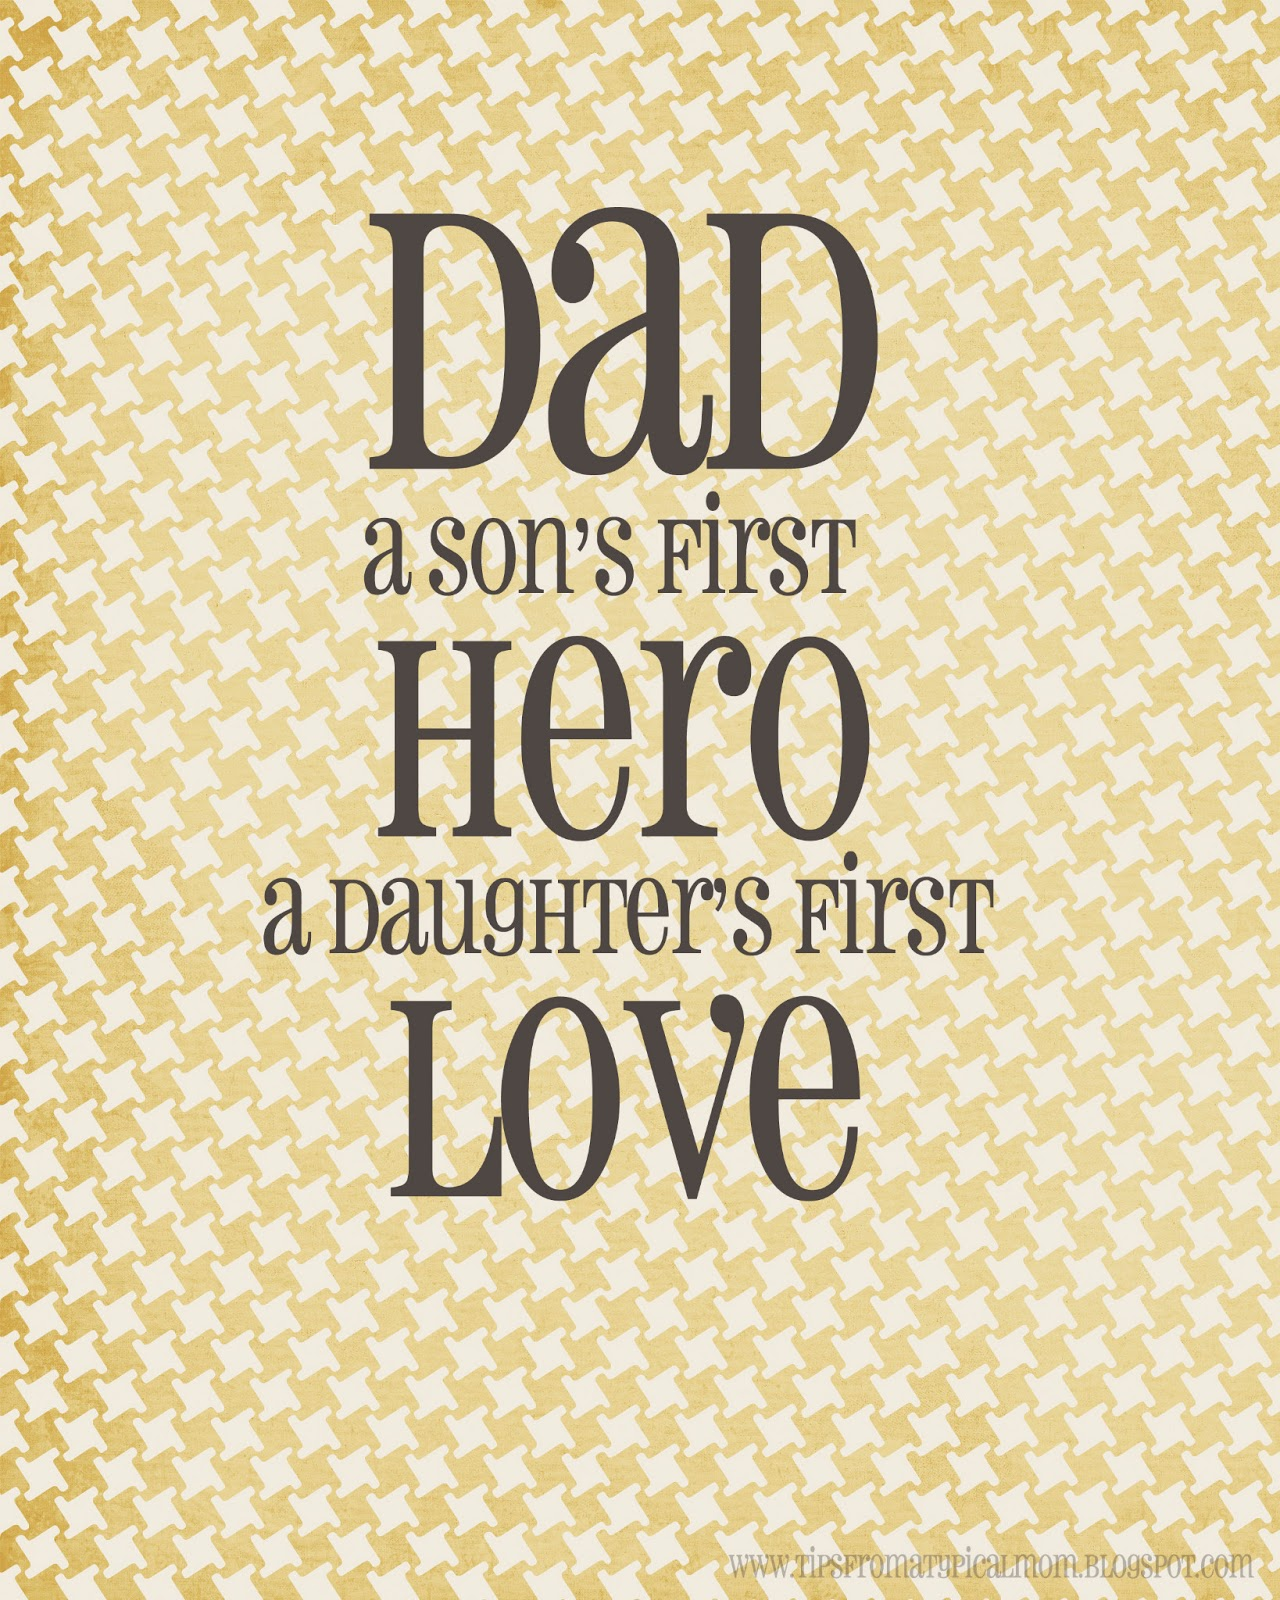 Father Love: Inspirational Father's Day Quotes From Real Families